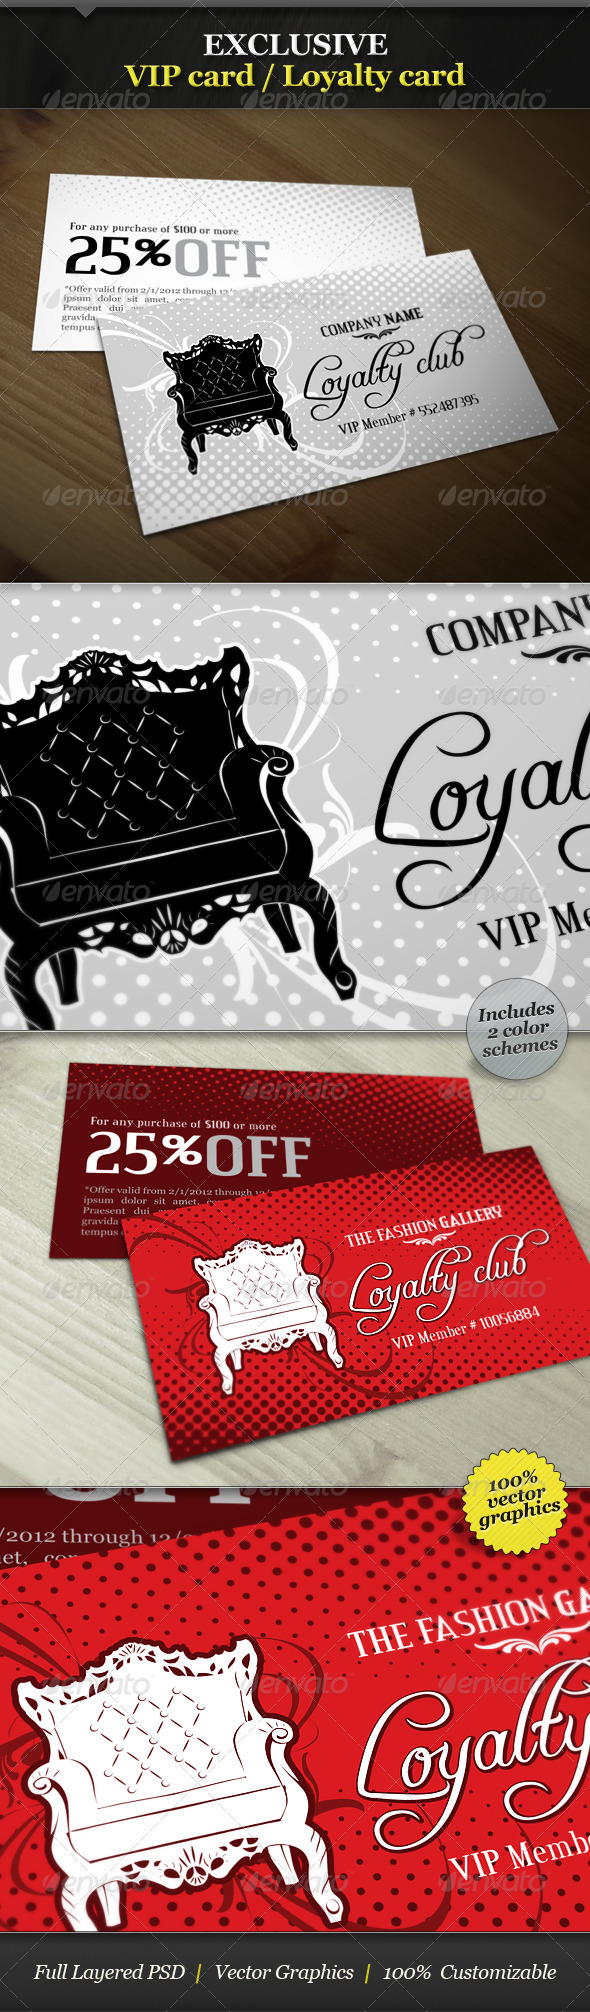 Exclusive VIP Card / Loyalty Card - Loyalty Cards Cards & Invites